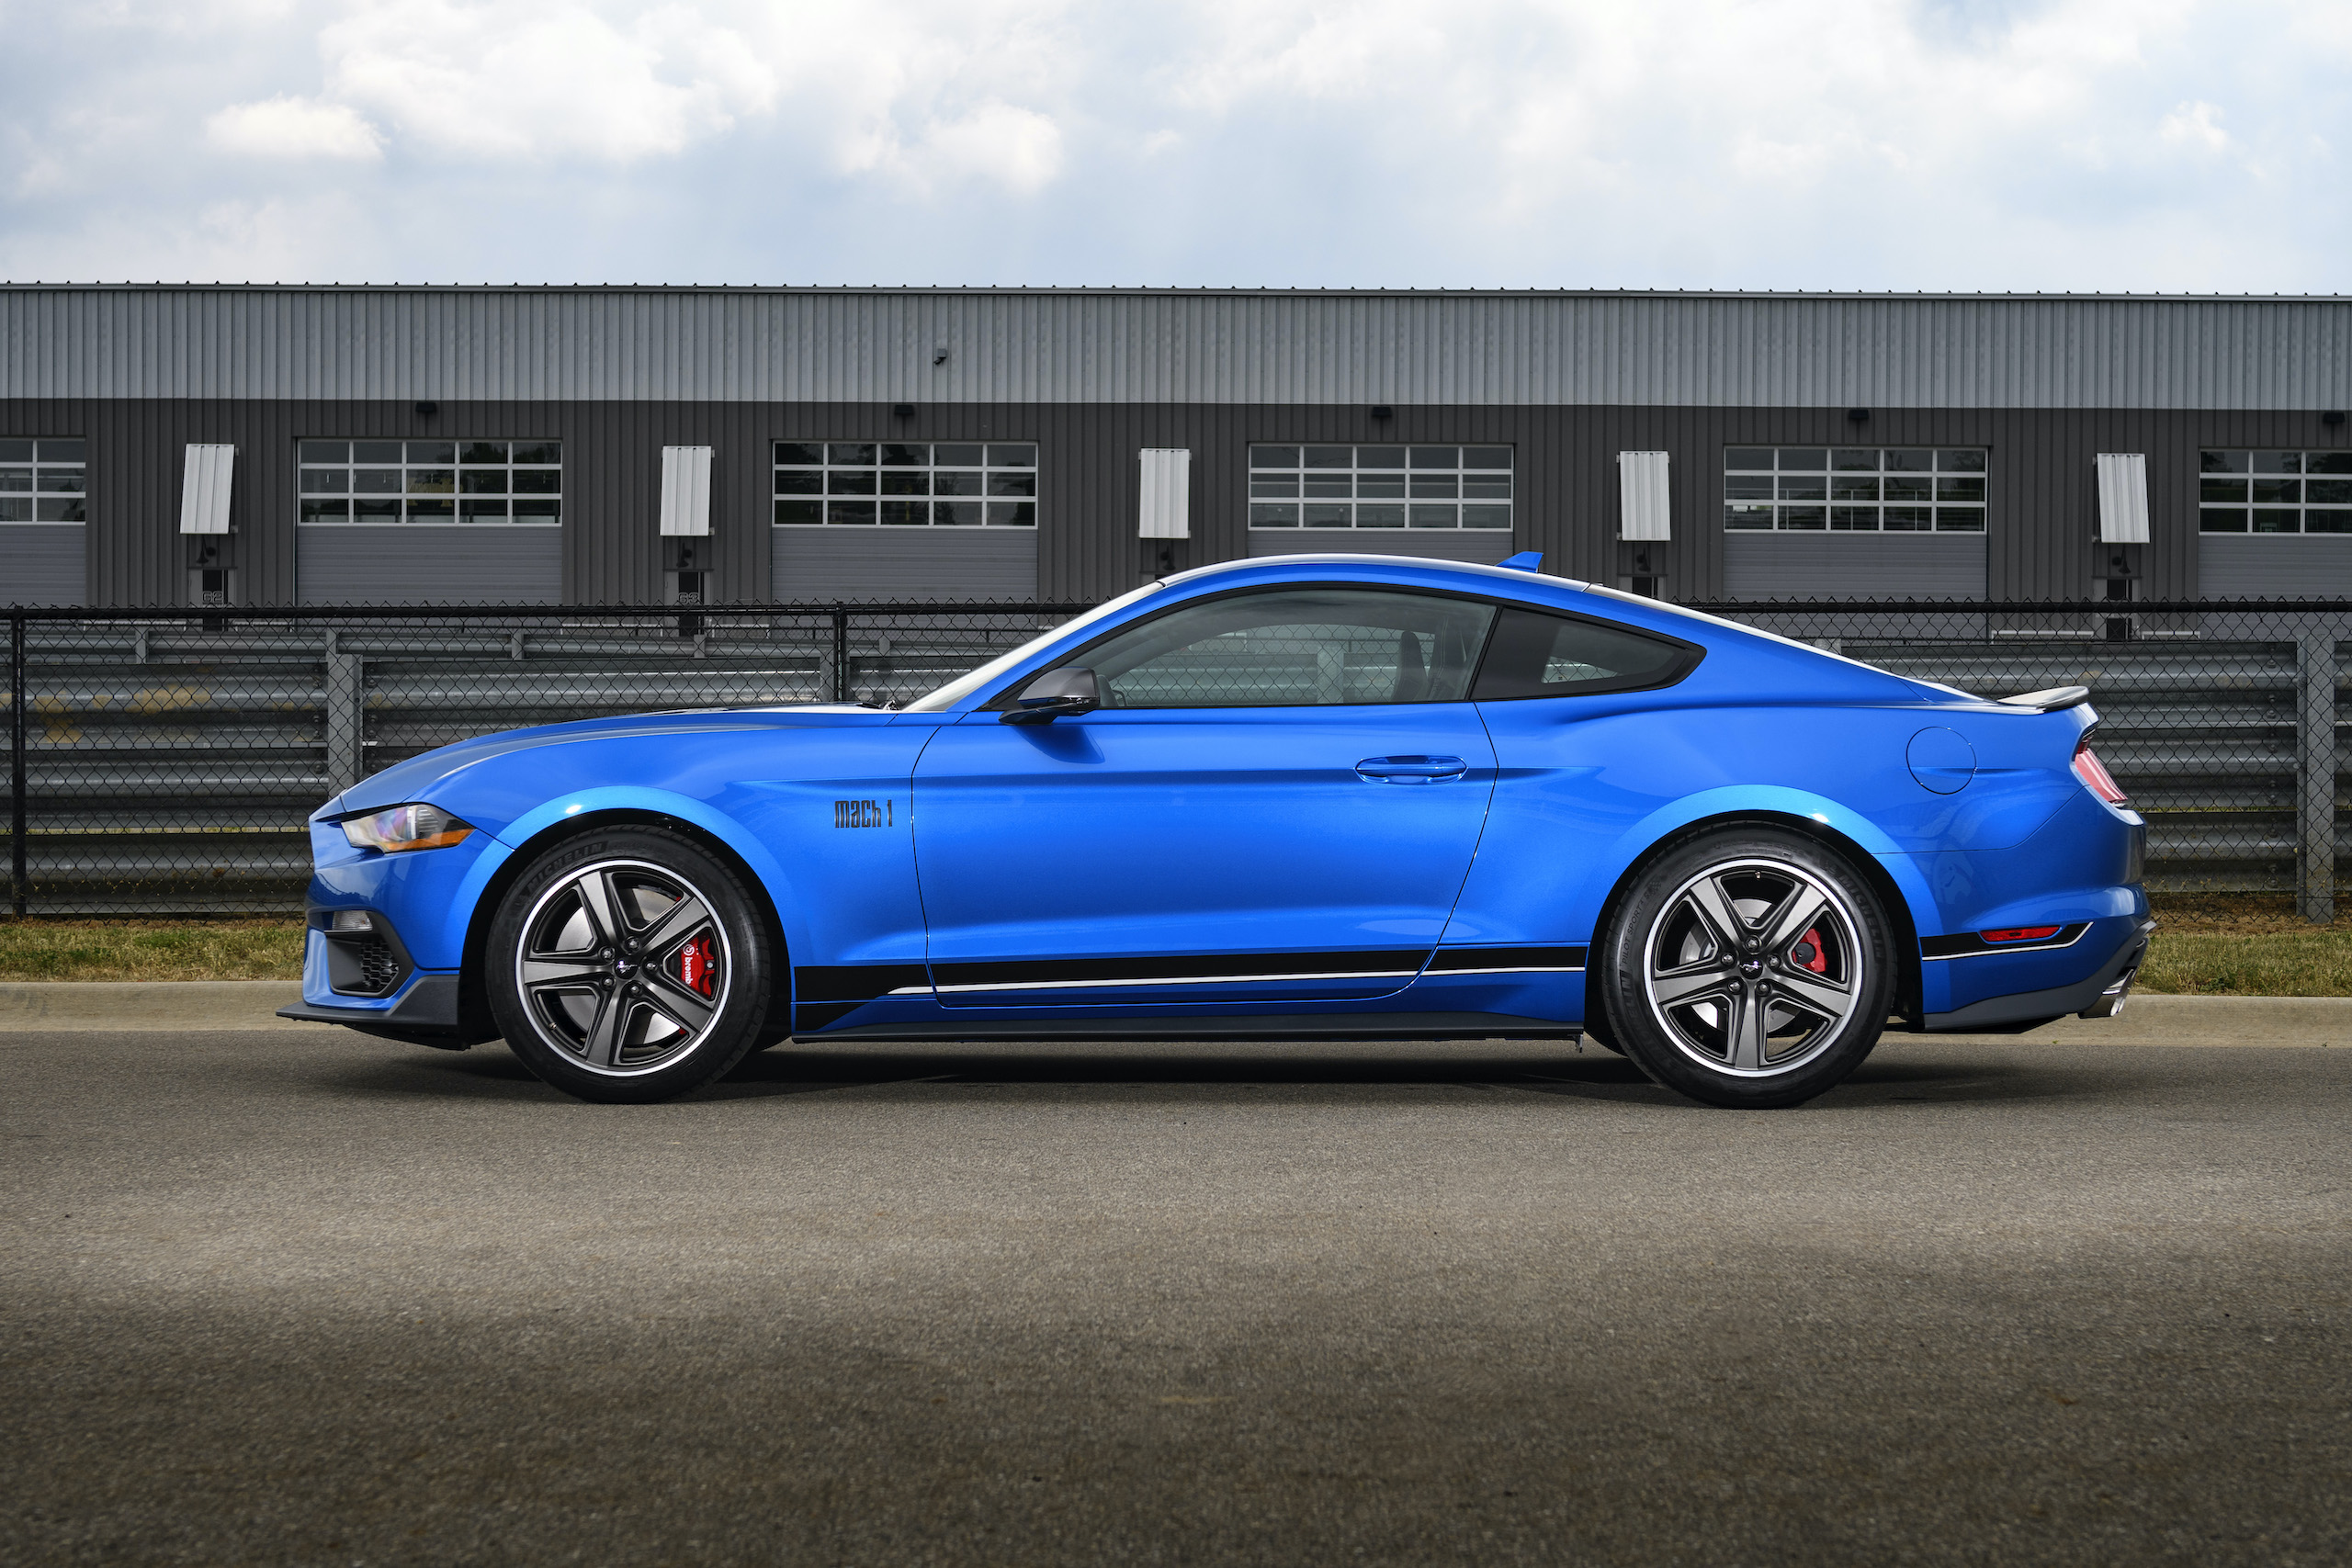 2021 Mustang Mach 1 blue side profile